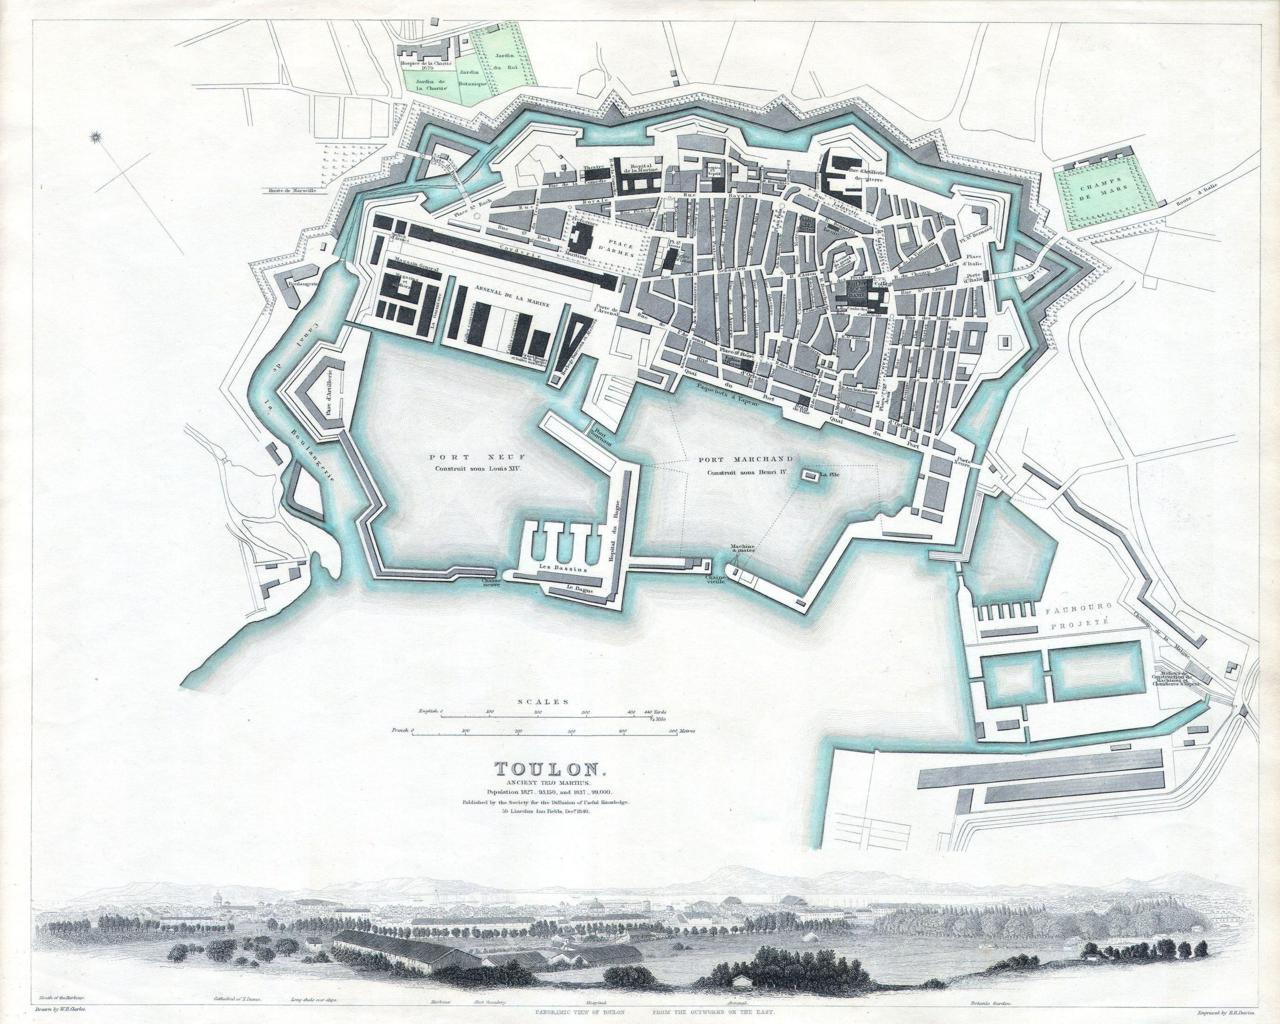 archimaps:  Map of Toulon in 1840, France